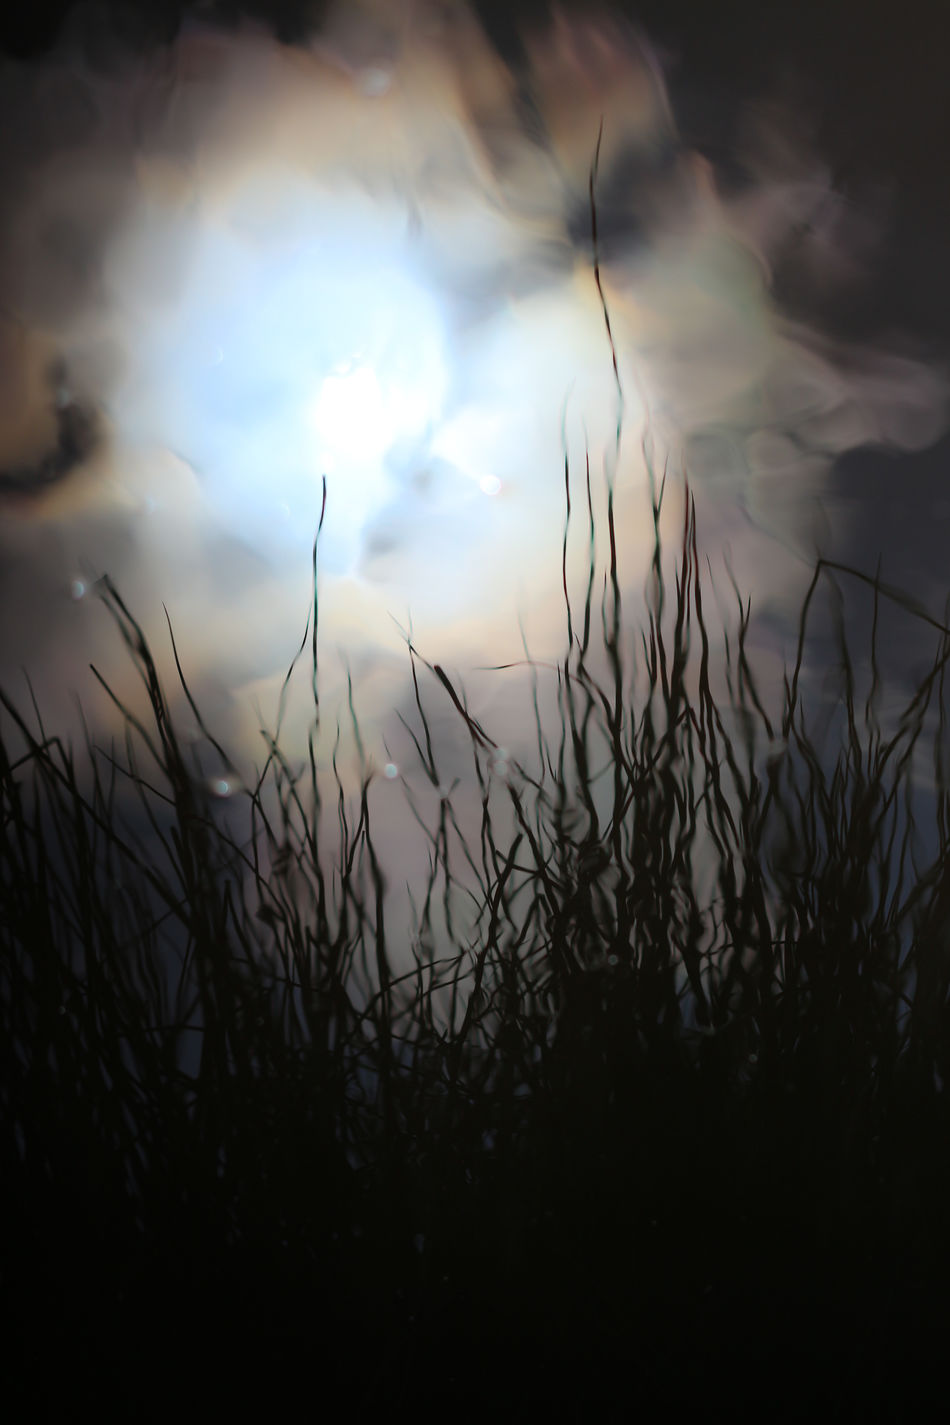 Silhouette Cloud - Sky Nature Dusk Outdoors Sky Landscape Plant Grass Multi Colored No People Rural Scene Pastel Colored Night Beauty In Nature Beautiful Darkness And Beauty Darkness And Light EyeEm Diversity Close-up Dark Art Light In The Darkness Light And Shadows Eyem Gallery Pattern